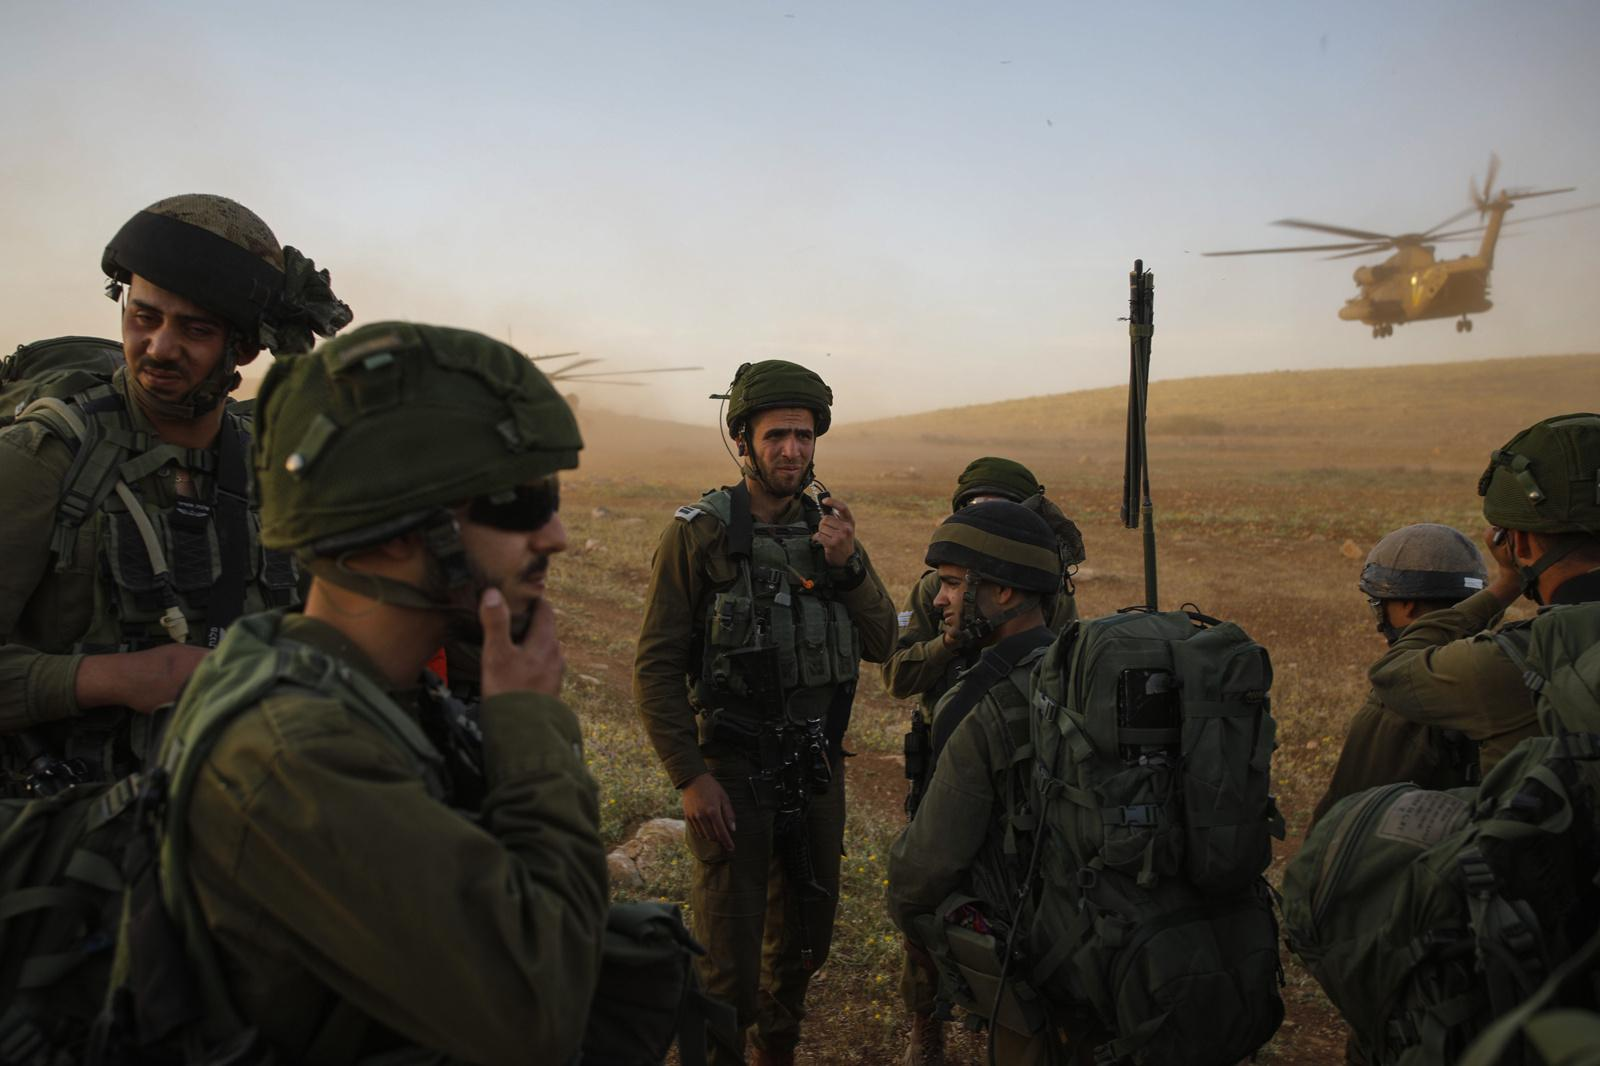 JORDAN VALLEY, ISRAEL - APRIL 05, 2017: Israeli infantry soldiers from the Haruv battalion of the Kfir Brigade take part in a counterterrorism drill with helicopters, that takes place in open fields close to the Kfir Brigade base in the Jordan Valley, West Bank, Israel on April 05, 2017.